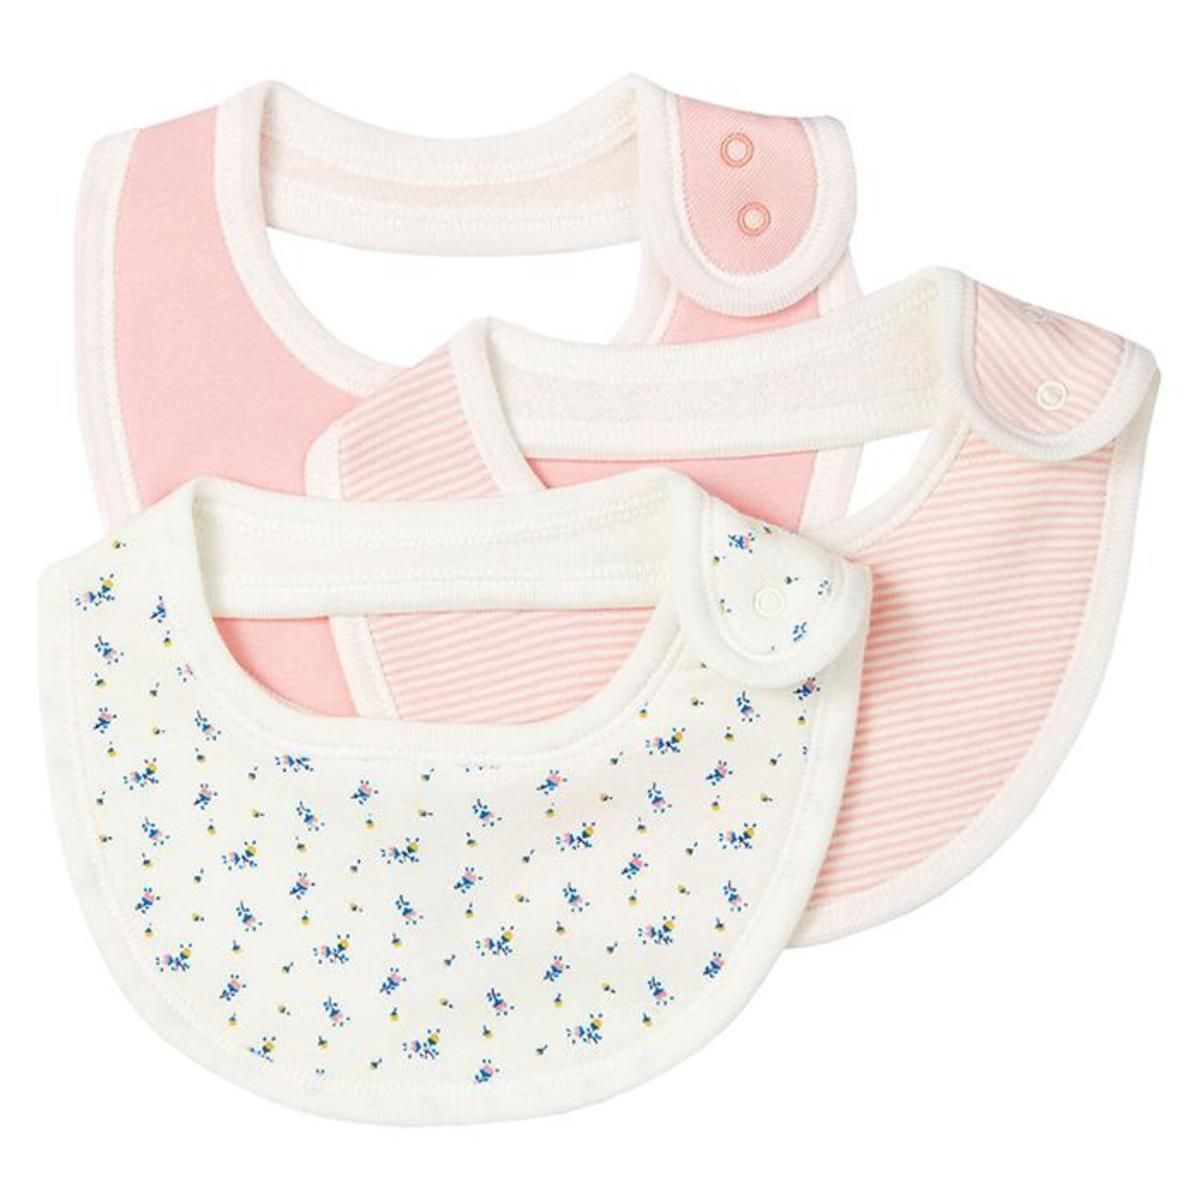 A0279 TADELE / 00 PINK MULTI / Baby 3 Pack Bibs